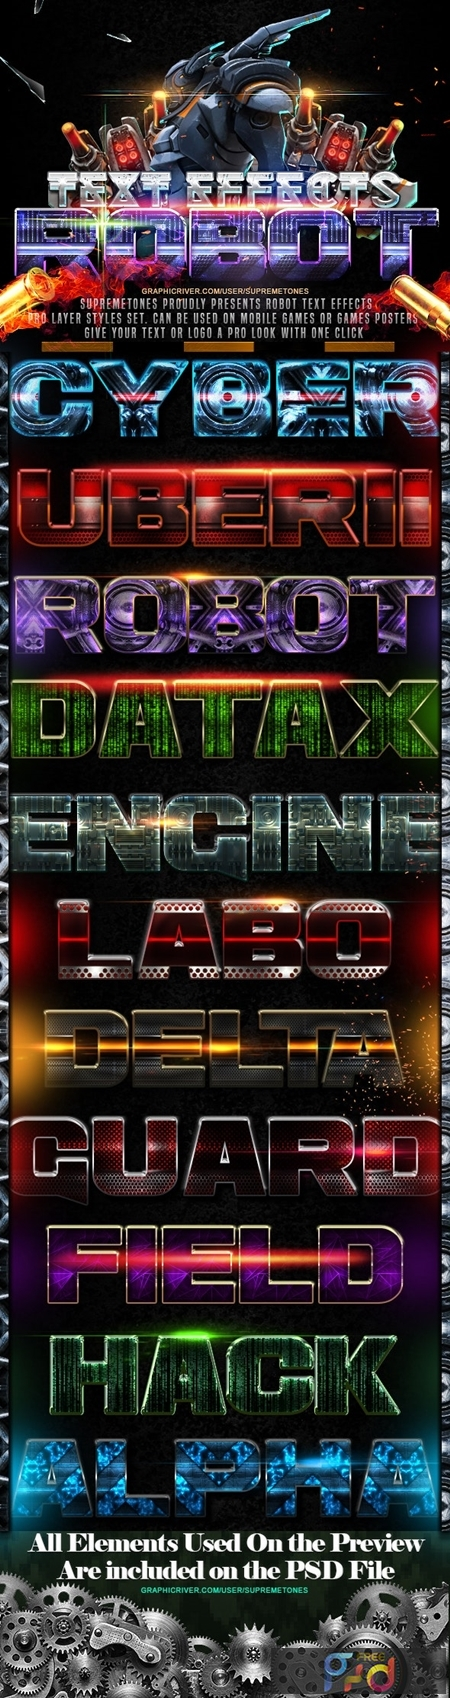 Robot Photoshop Text Effects 24697627 1